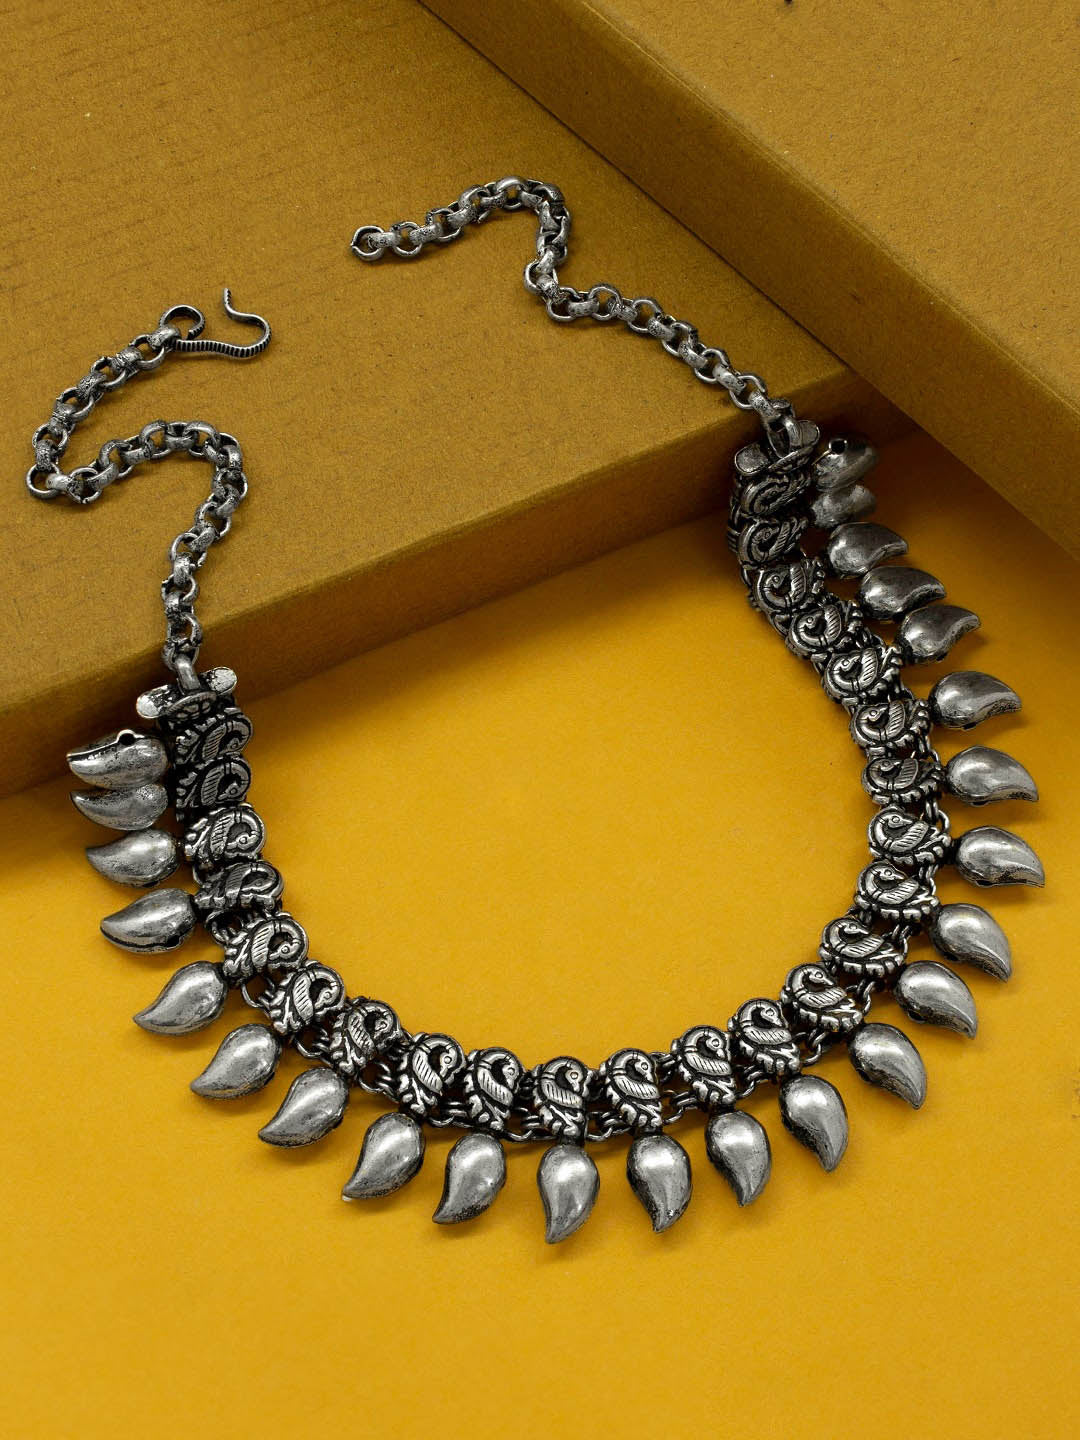 Oxidized German Silver Peacock Design With Mango Shape Design Motifs Choker Necklace-OXIDIZED-Necklace